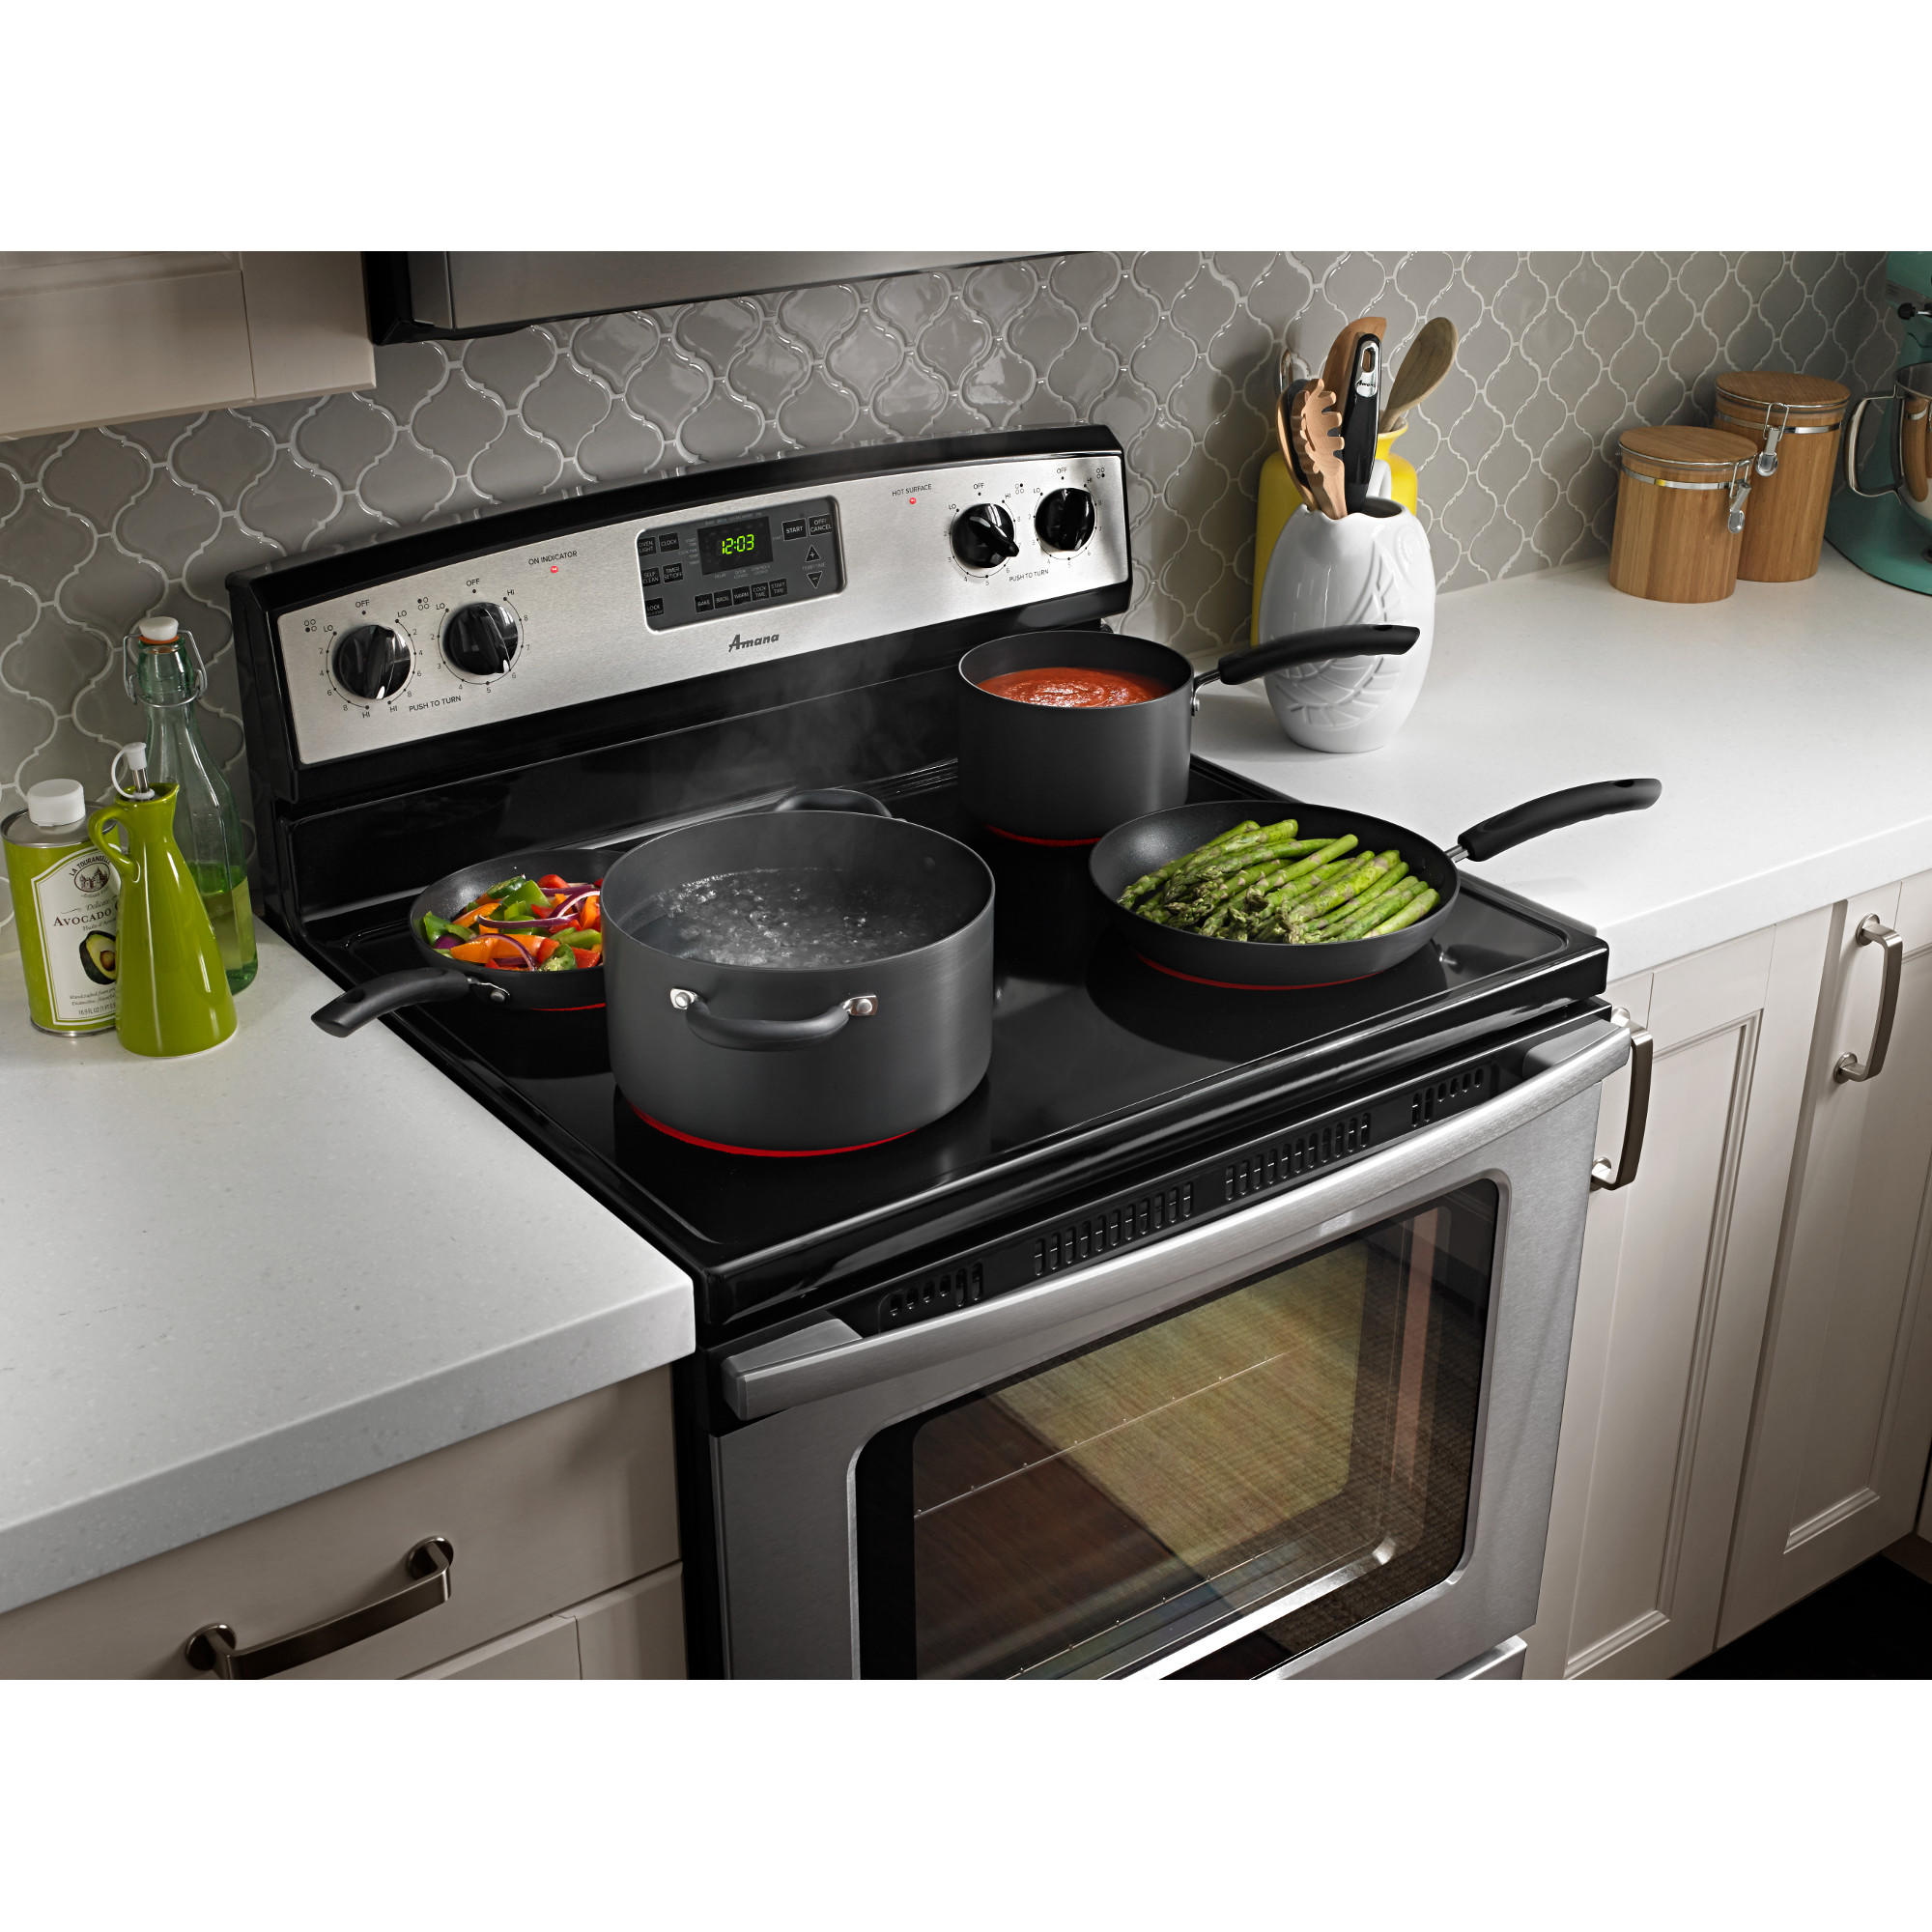 Amana AER5630BAS 4.8 cu. ft. Self-Cleaning Electric Range - Stainless Steel